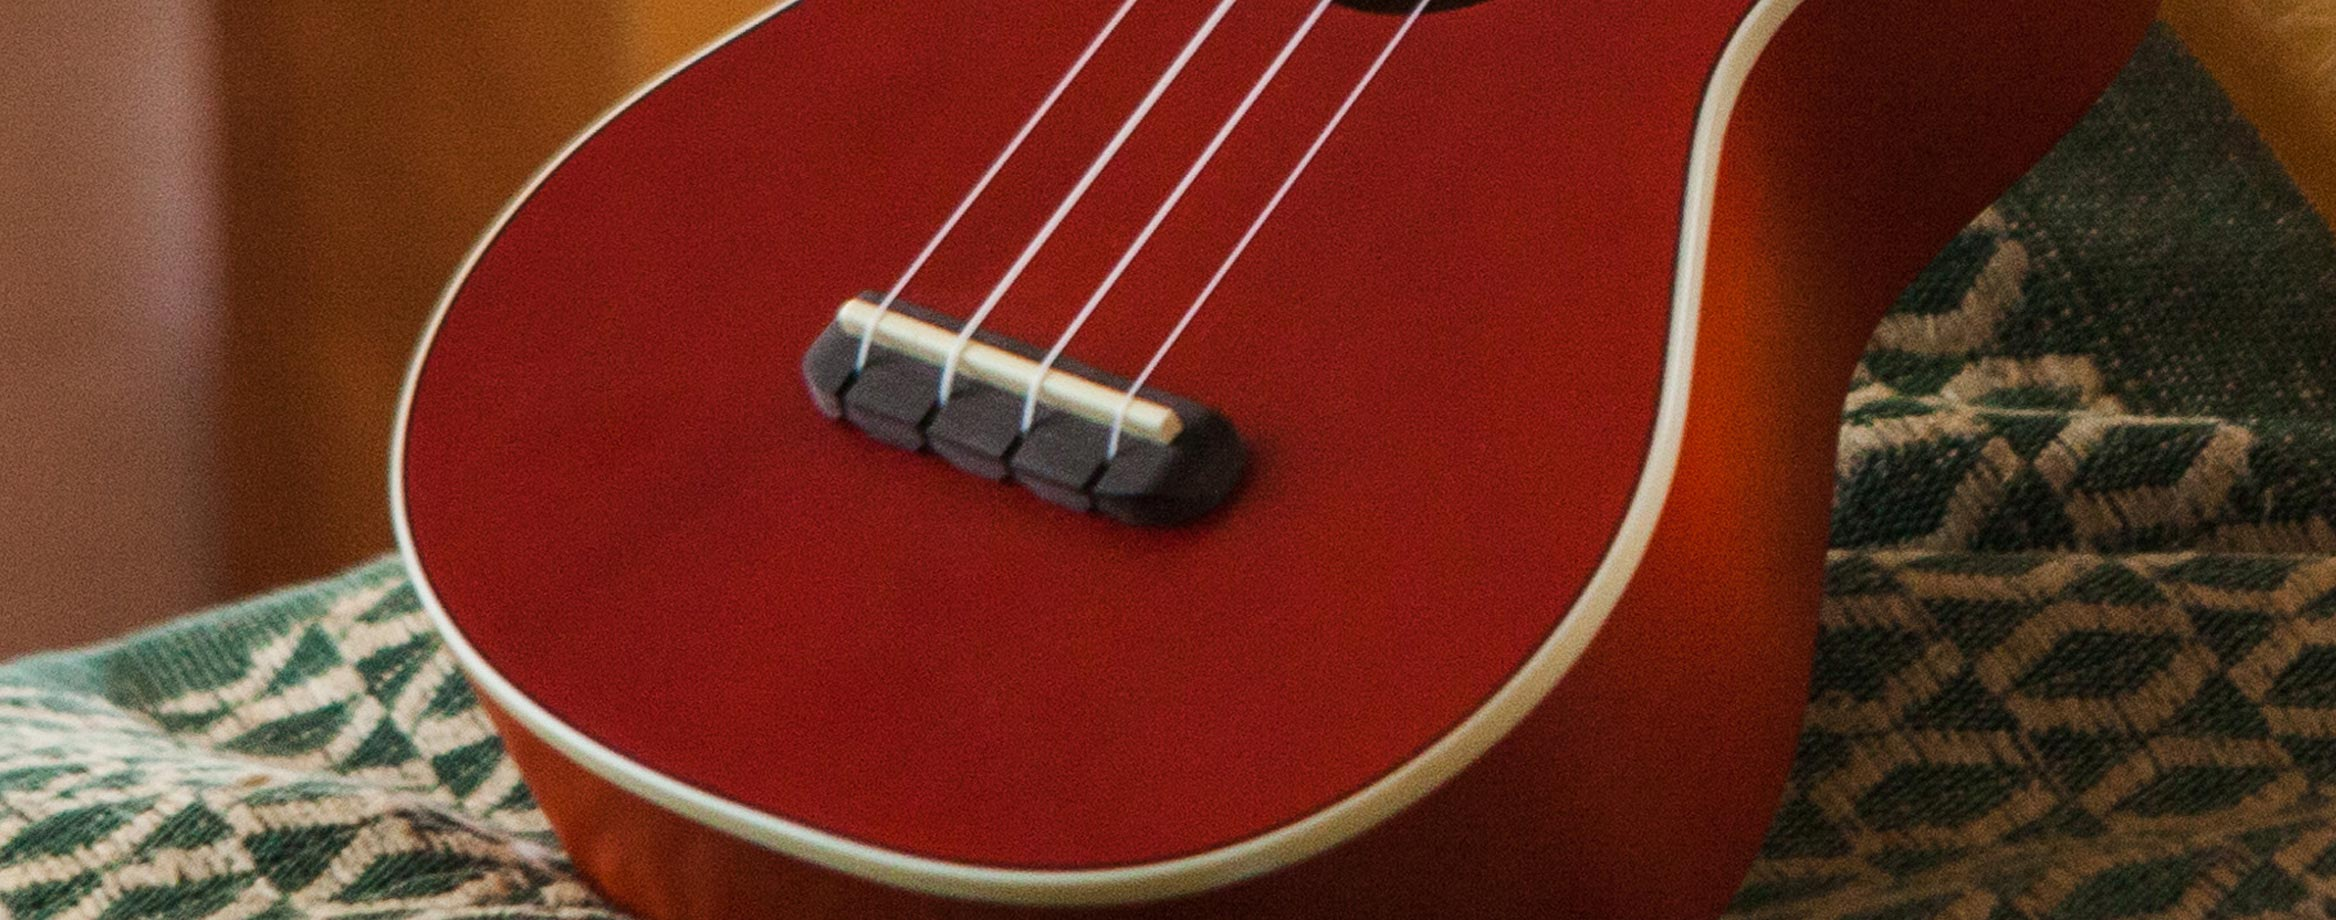 Off Loading Nylon String And